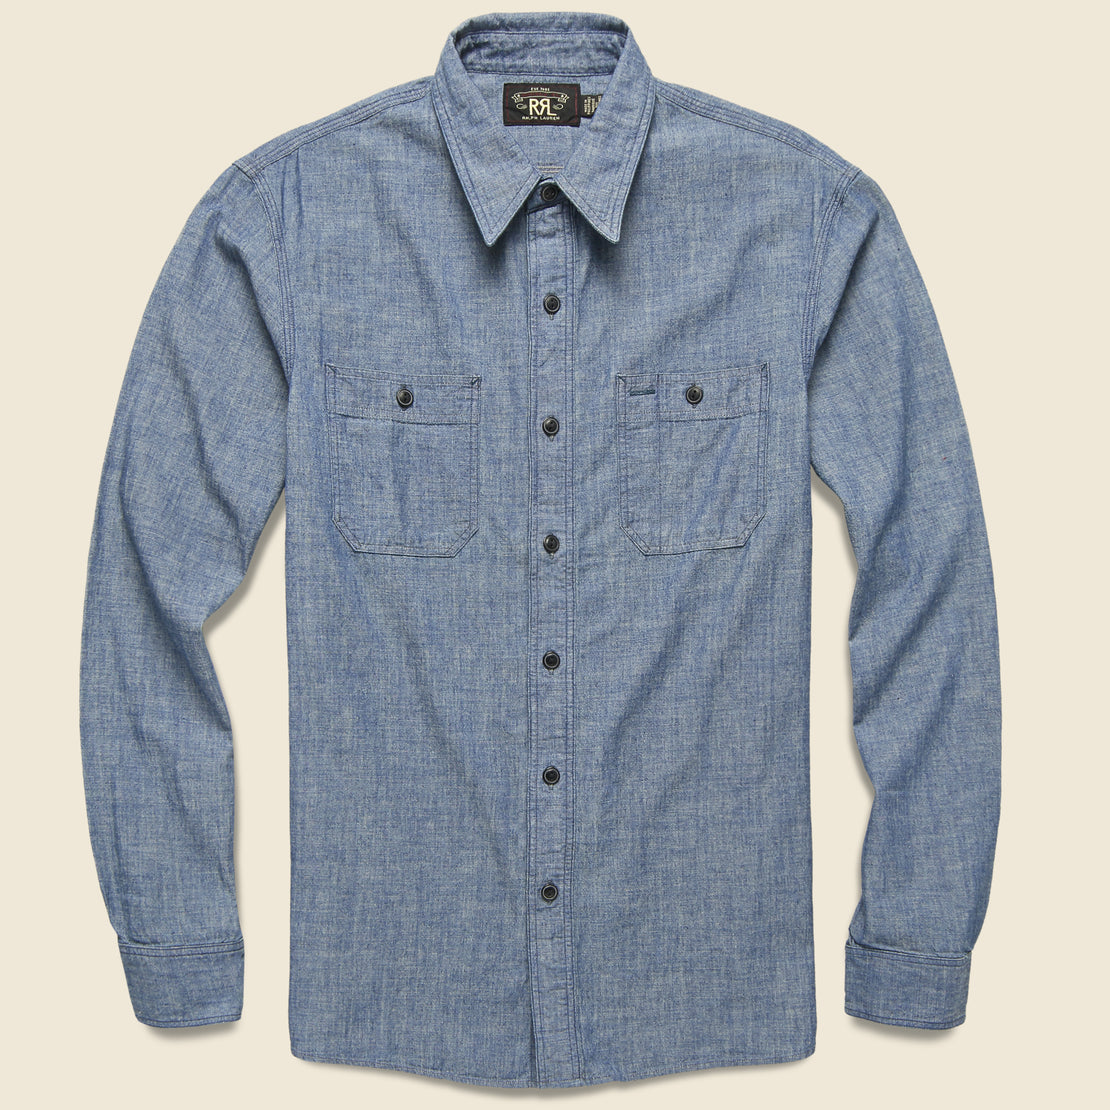 RRL Indigo Chambray Workshirt - Indigo Rinse